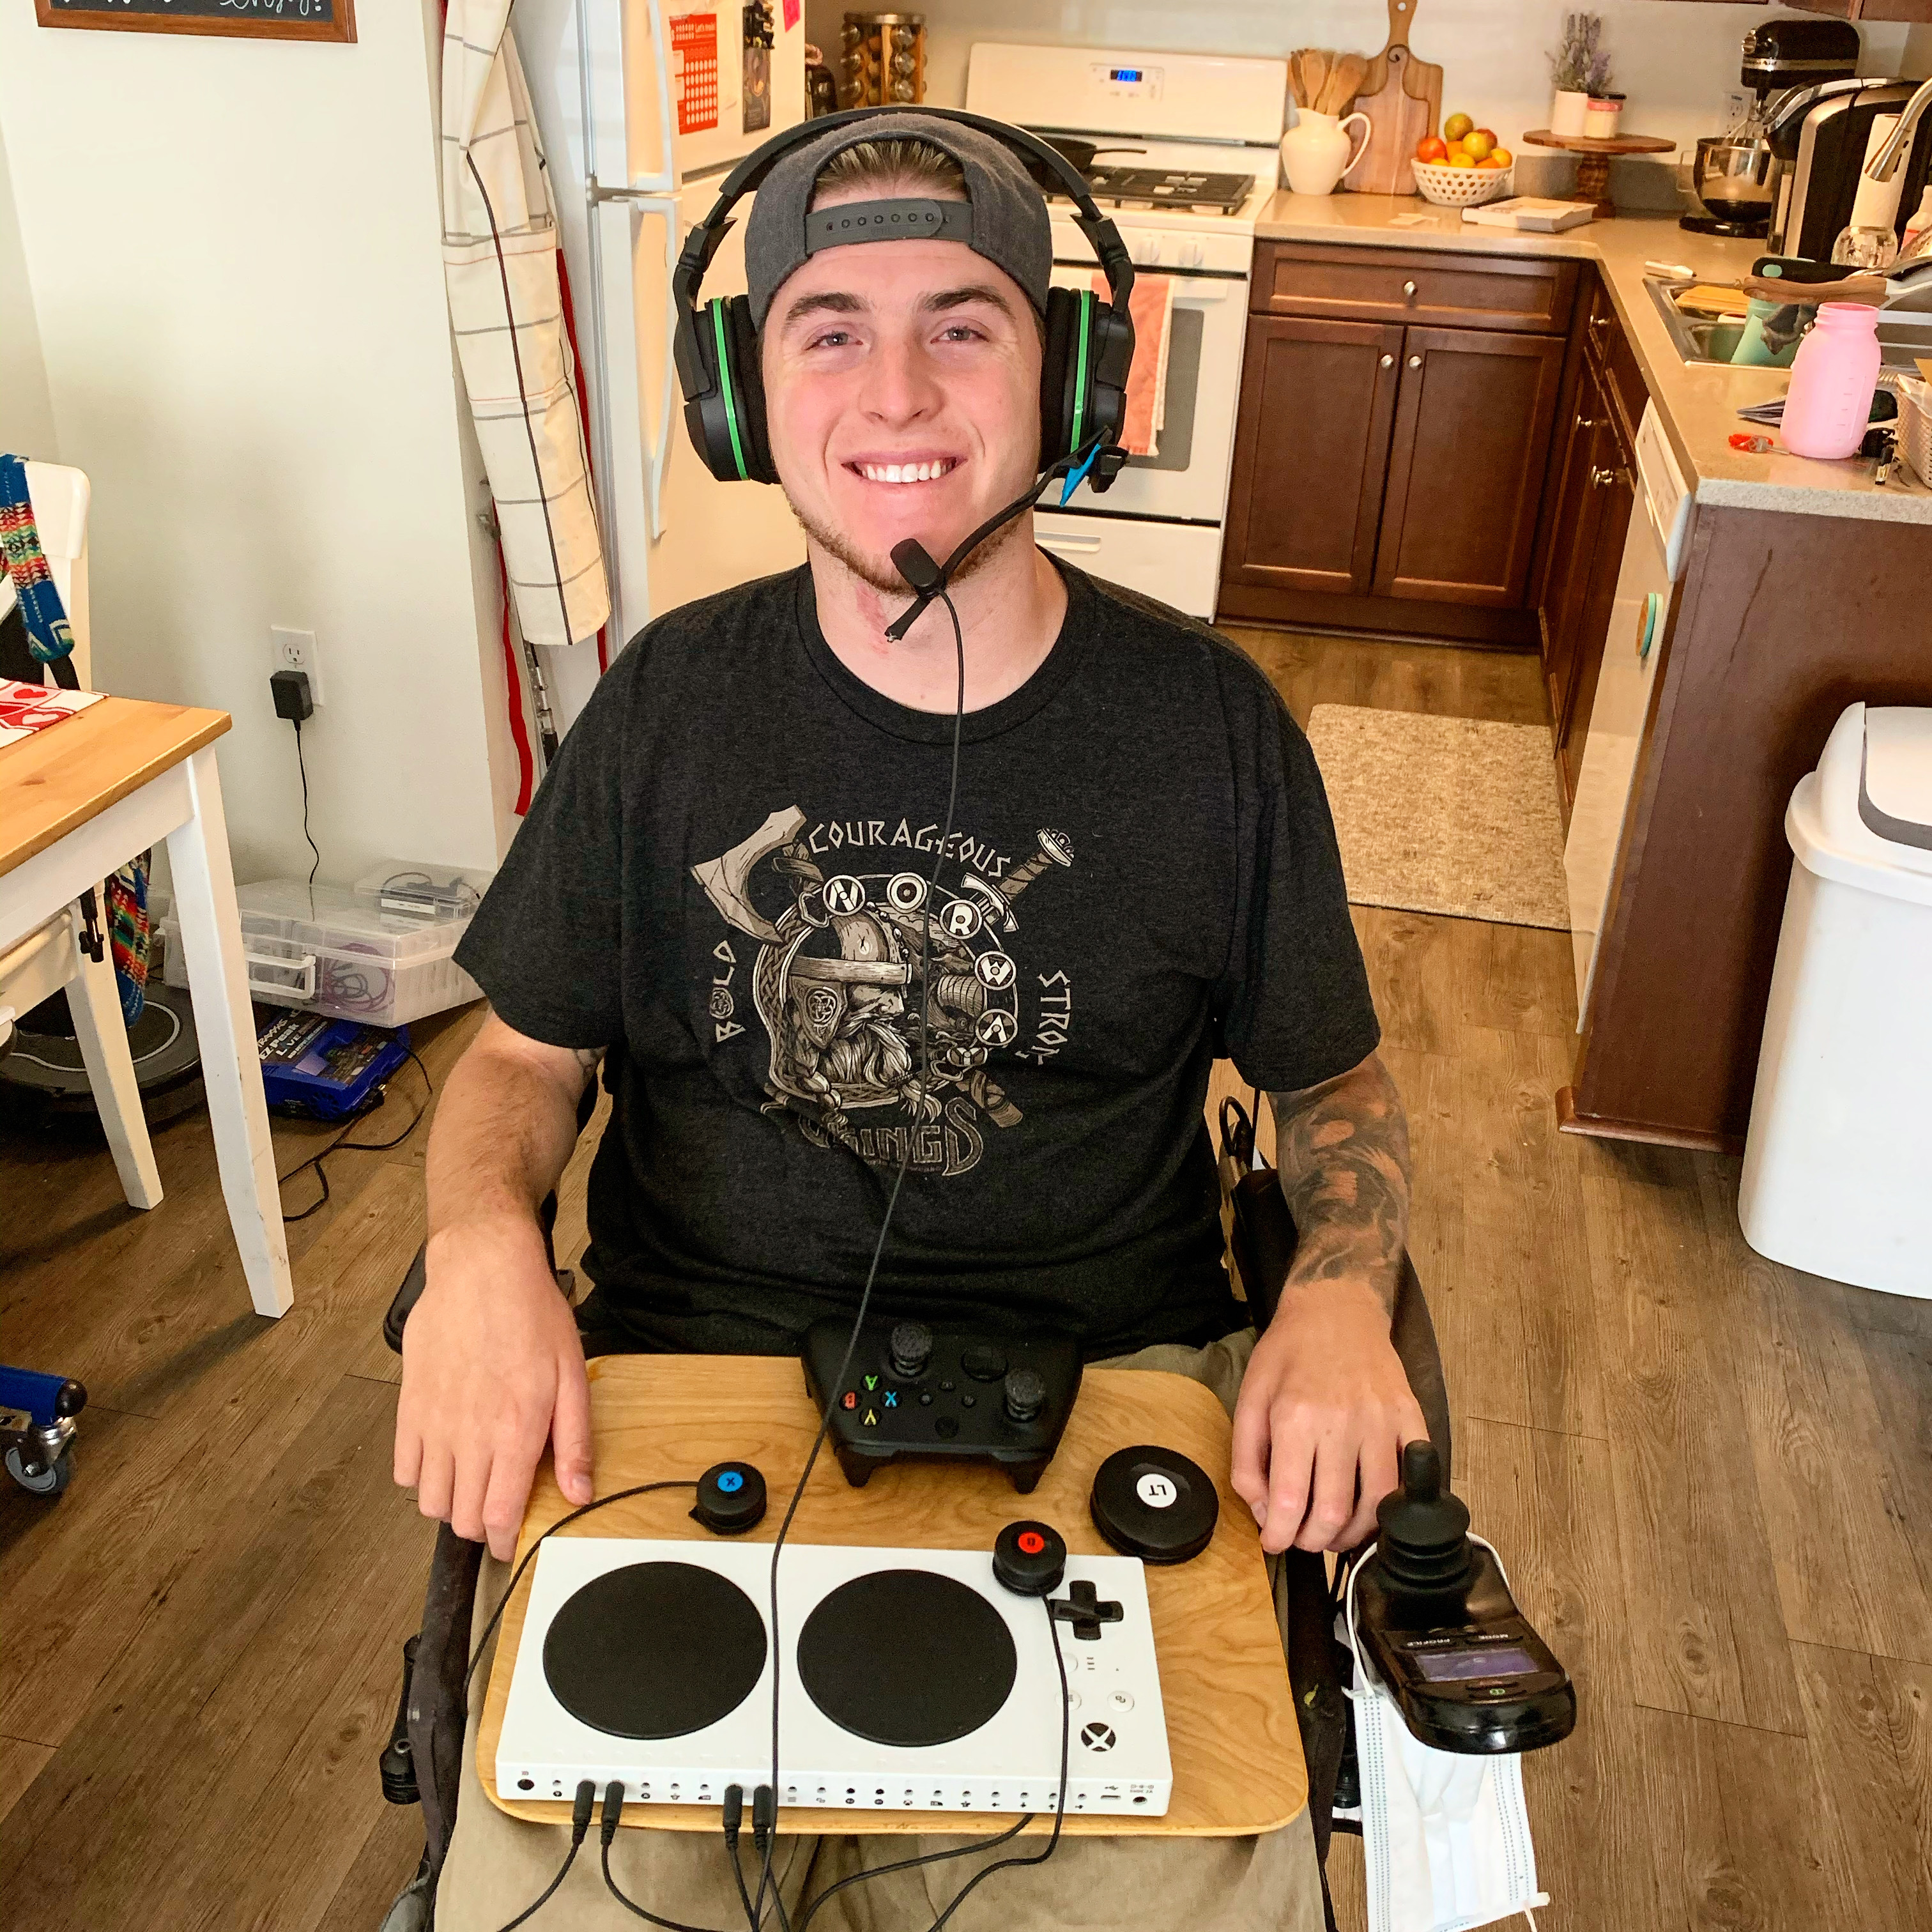 Zack holding his adaptive controller and wearing headphones